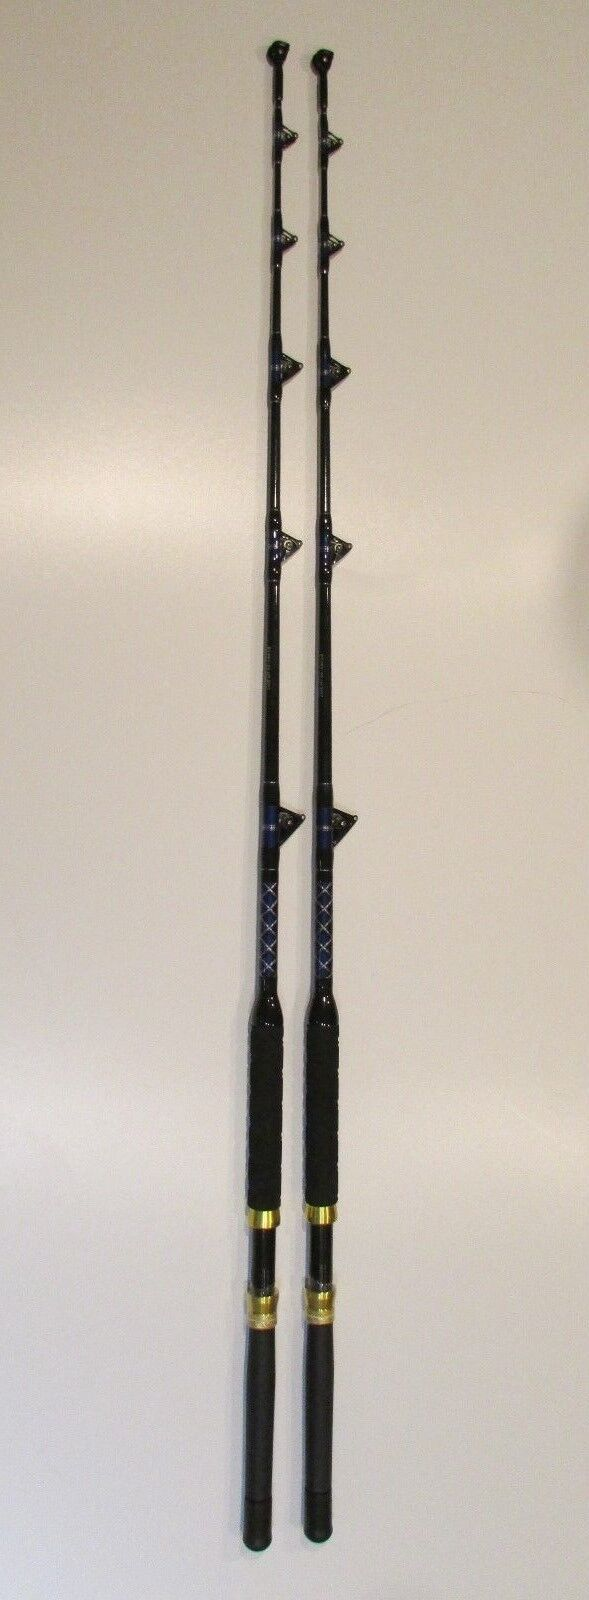 XCALIBER MARINE PAIR OF SALTWATER TROLLING ROD ROLLER GUIDES 50-80lb